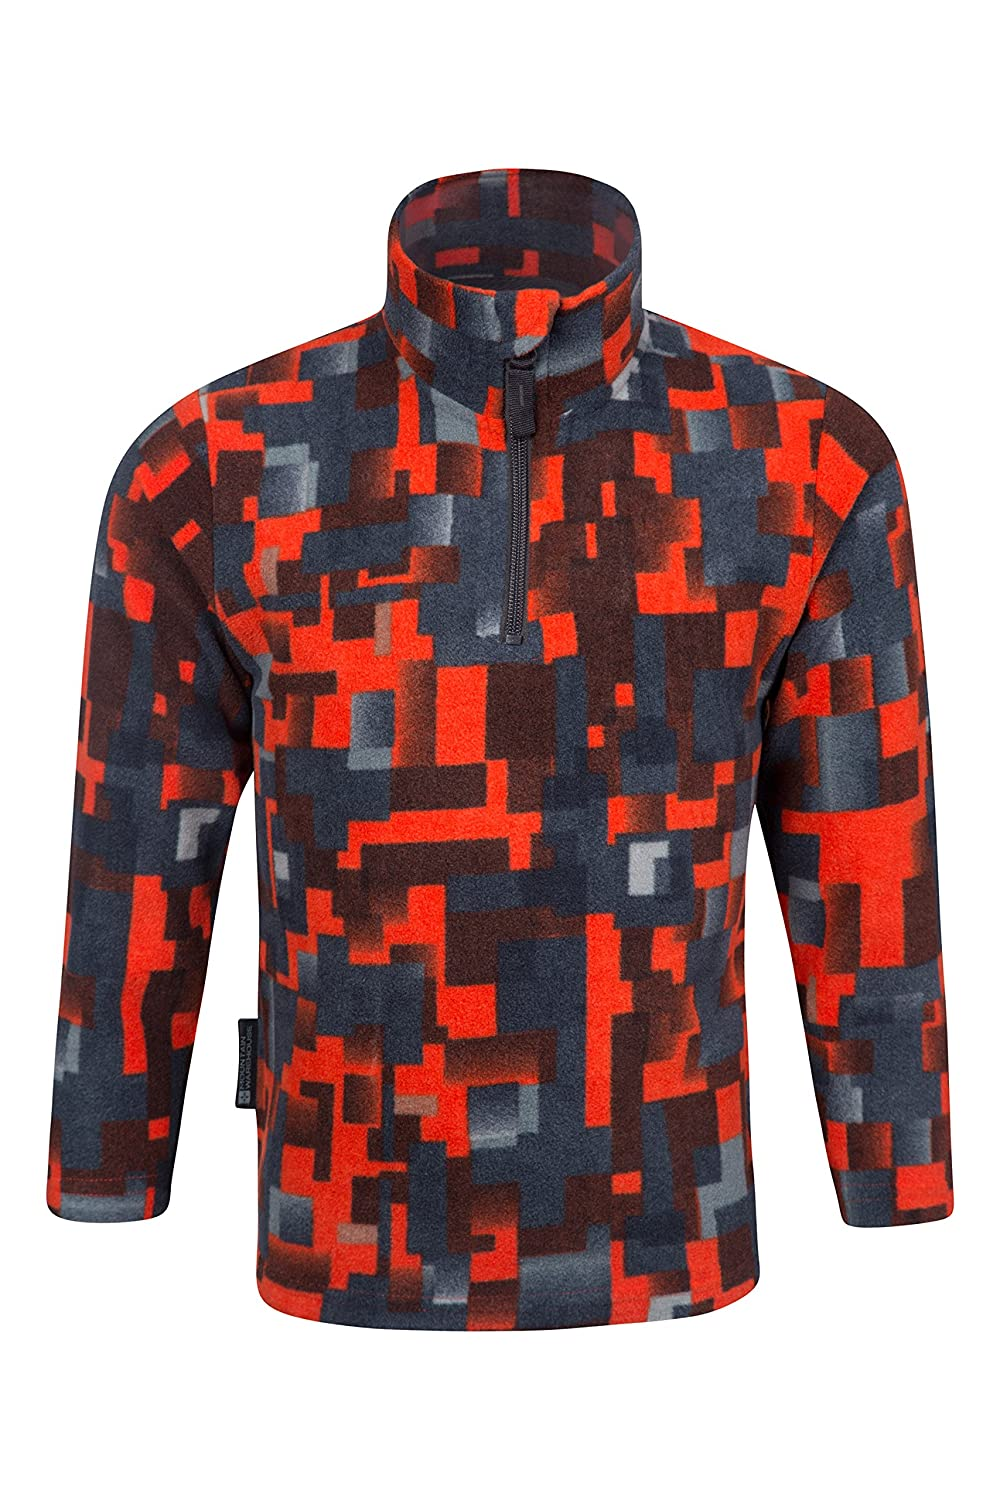 Mountain Warehouse Pursuit Kinder-Fleecejacke mit Camouflage Aufdruck